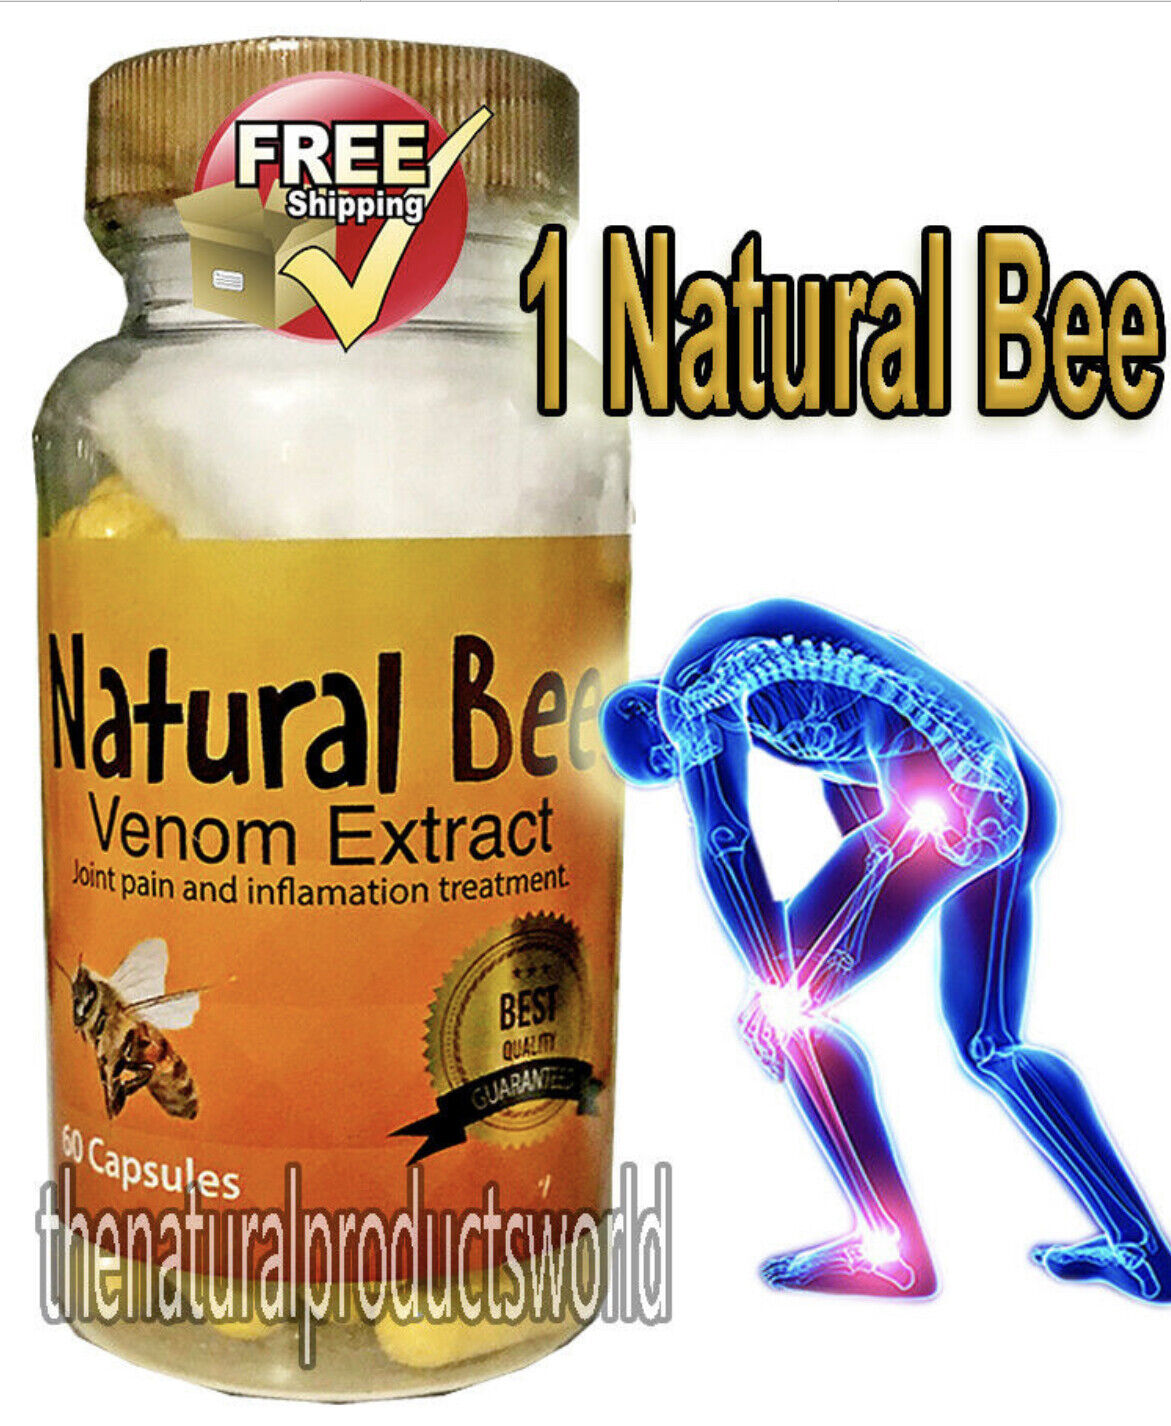 NATURAL BEE Venom Extract anti-inflamatory Extracts Arthritis Pain Abee therapy. 1